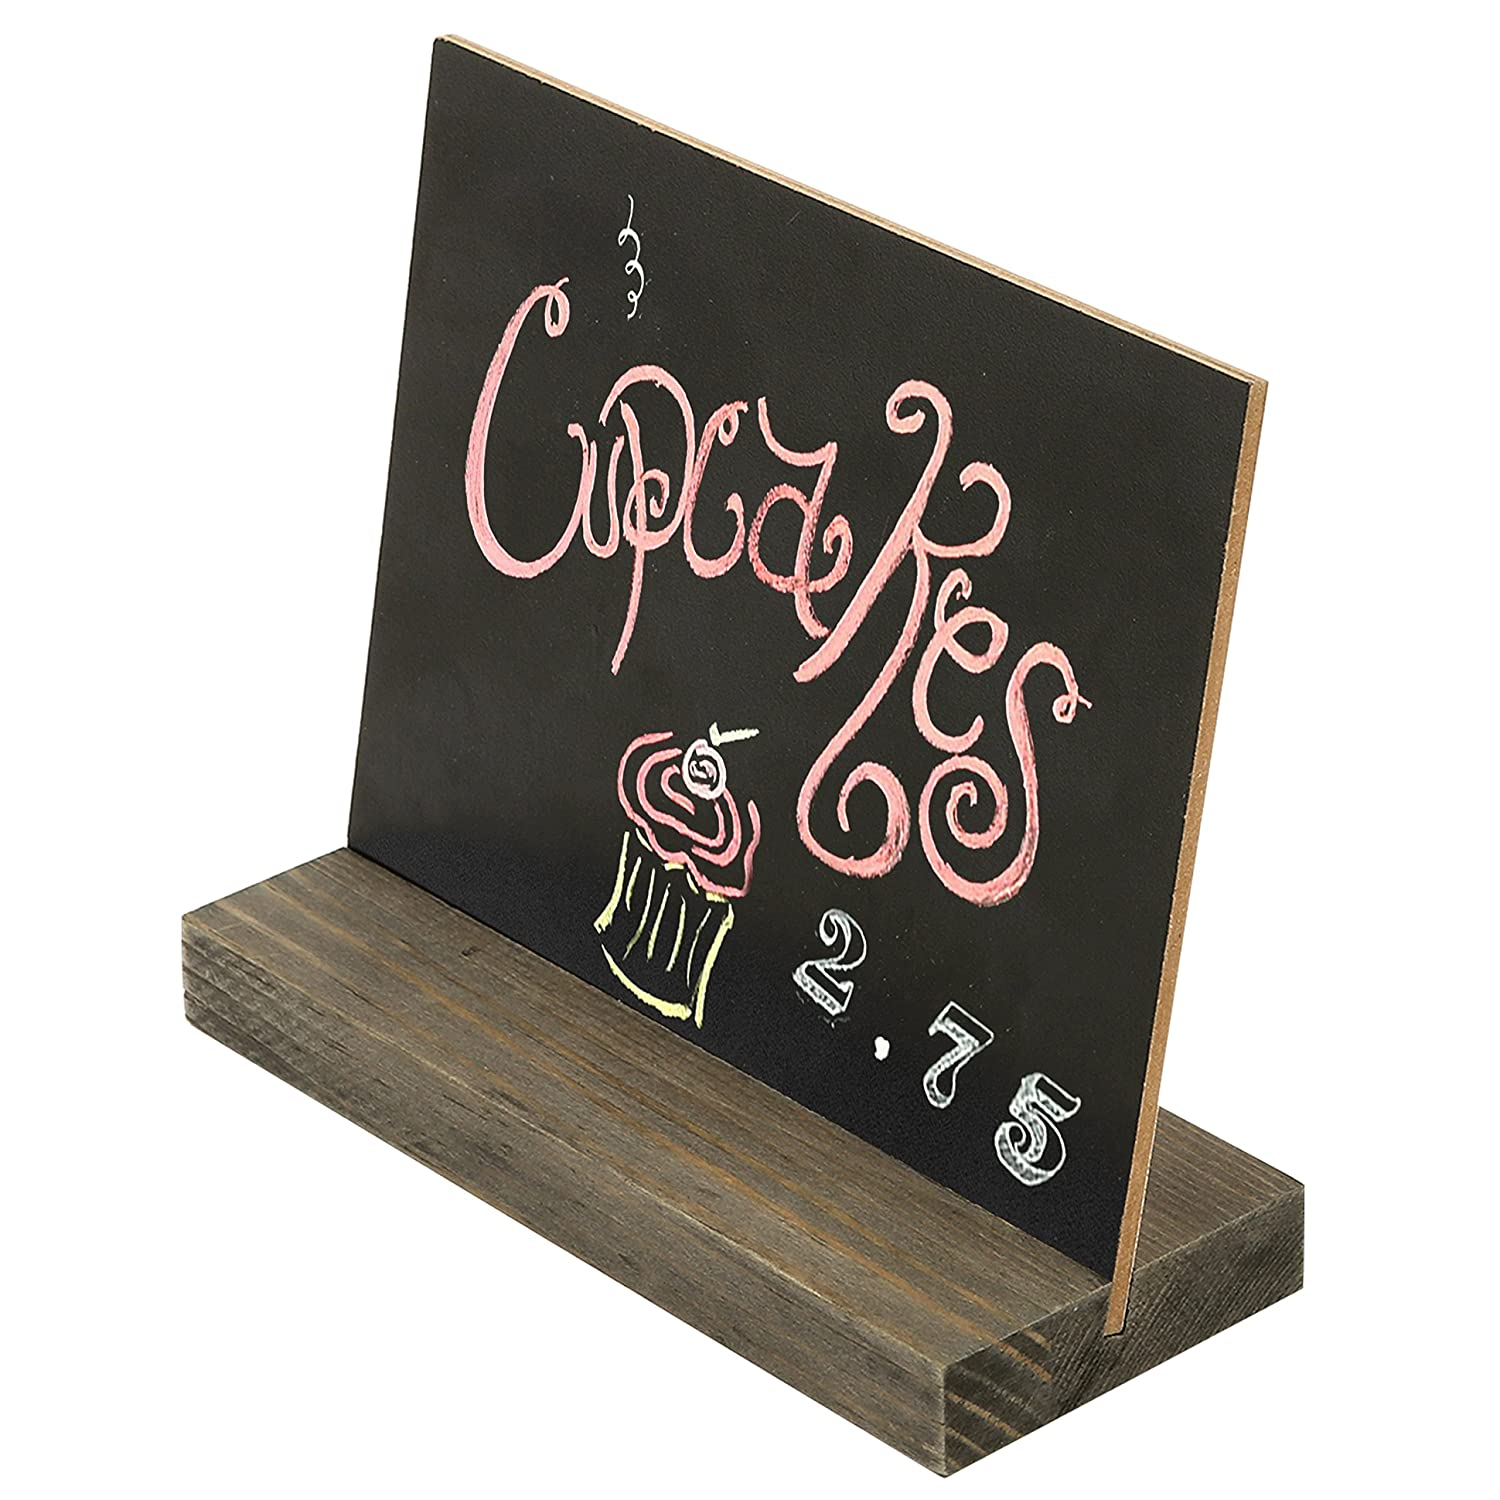 MyGift Mini Tabletop Chalkboard Signs with Rustic Wood Stands Set of 6 5 x 6-inch